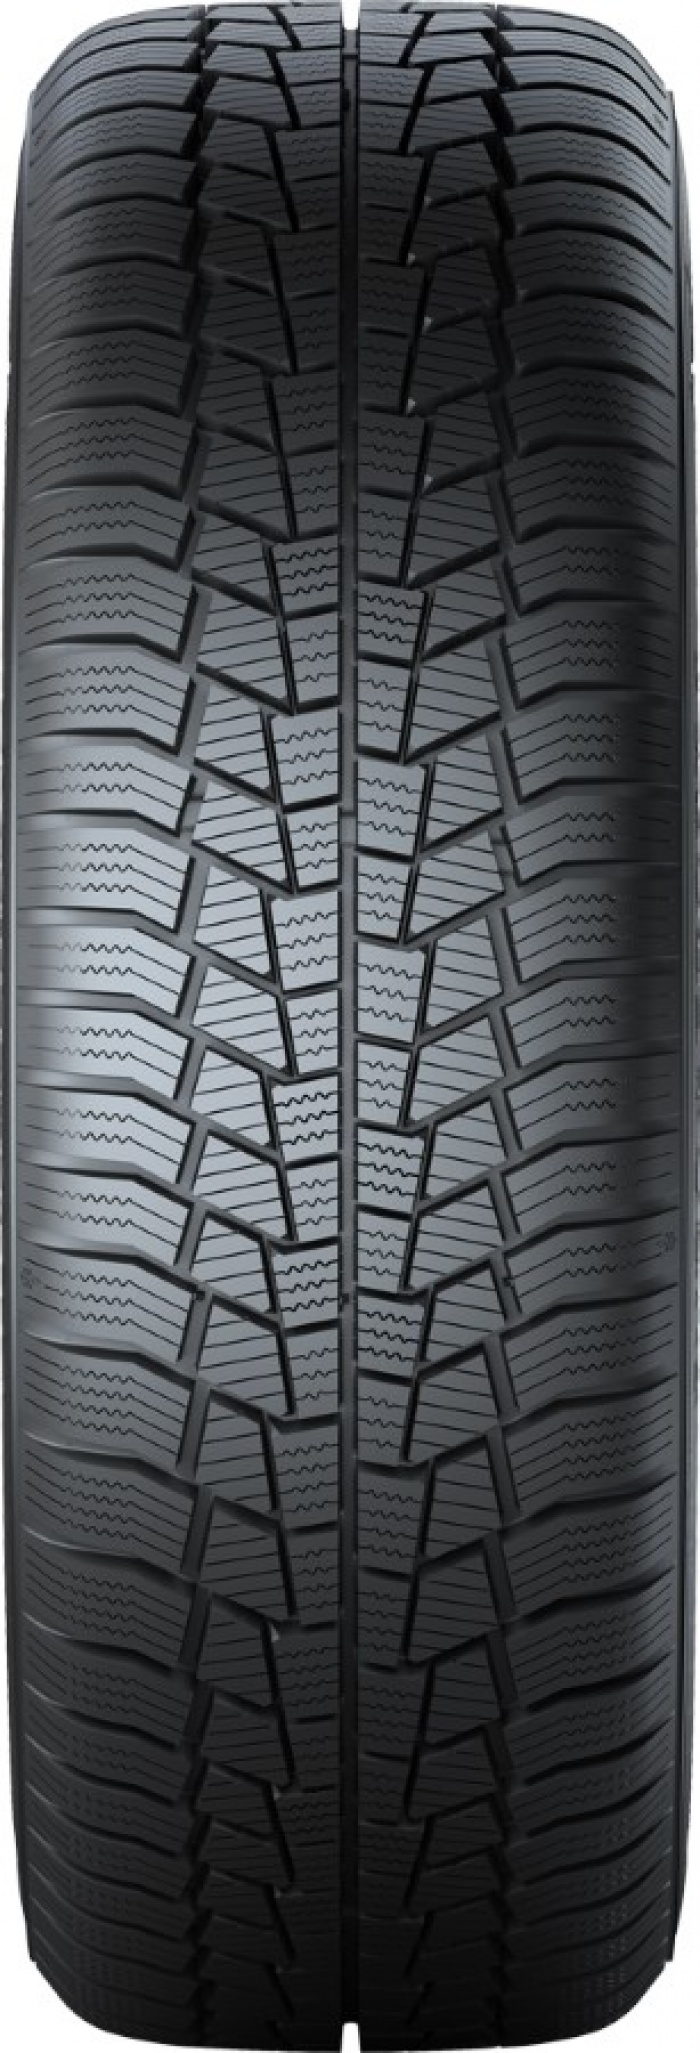 Gislaved Euro Frost 6 215/60 R16 99H  не шип